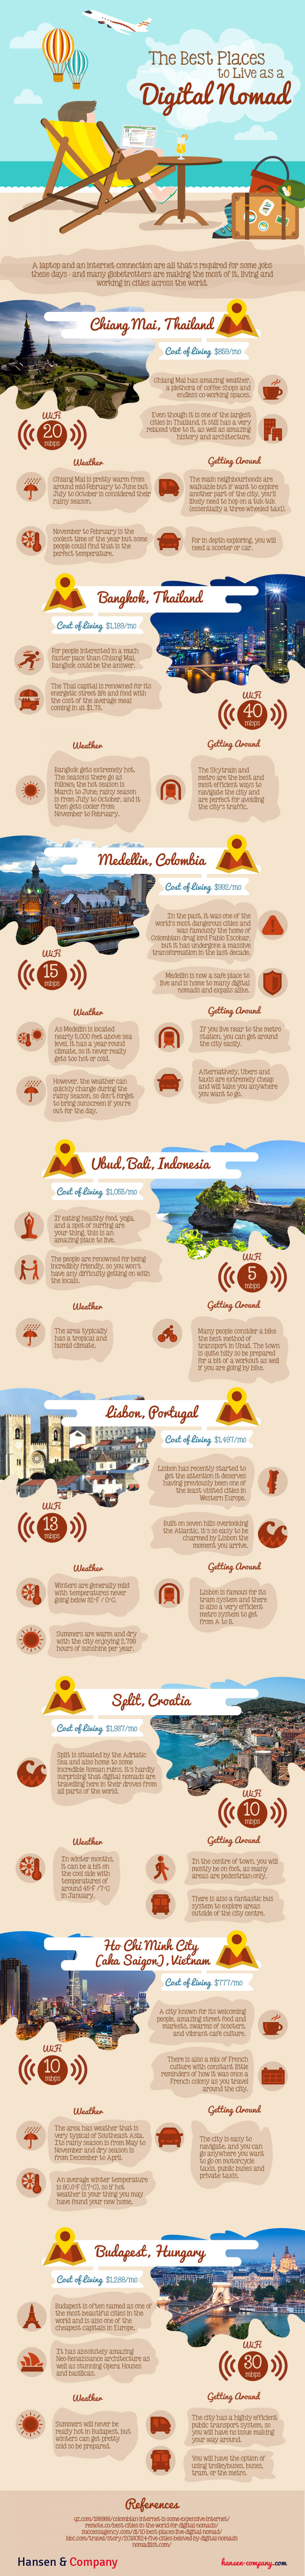 For Those Keen To Relocate Or Within Europe This Infographic Includes Information About The Hottest European Digital Nomad Destinations